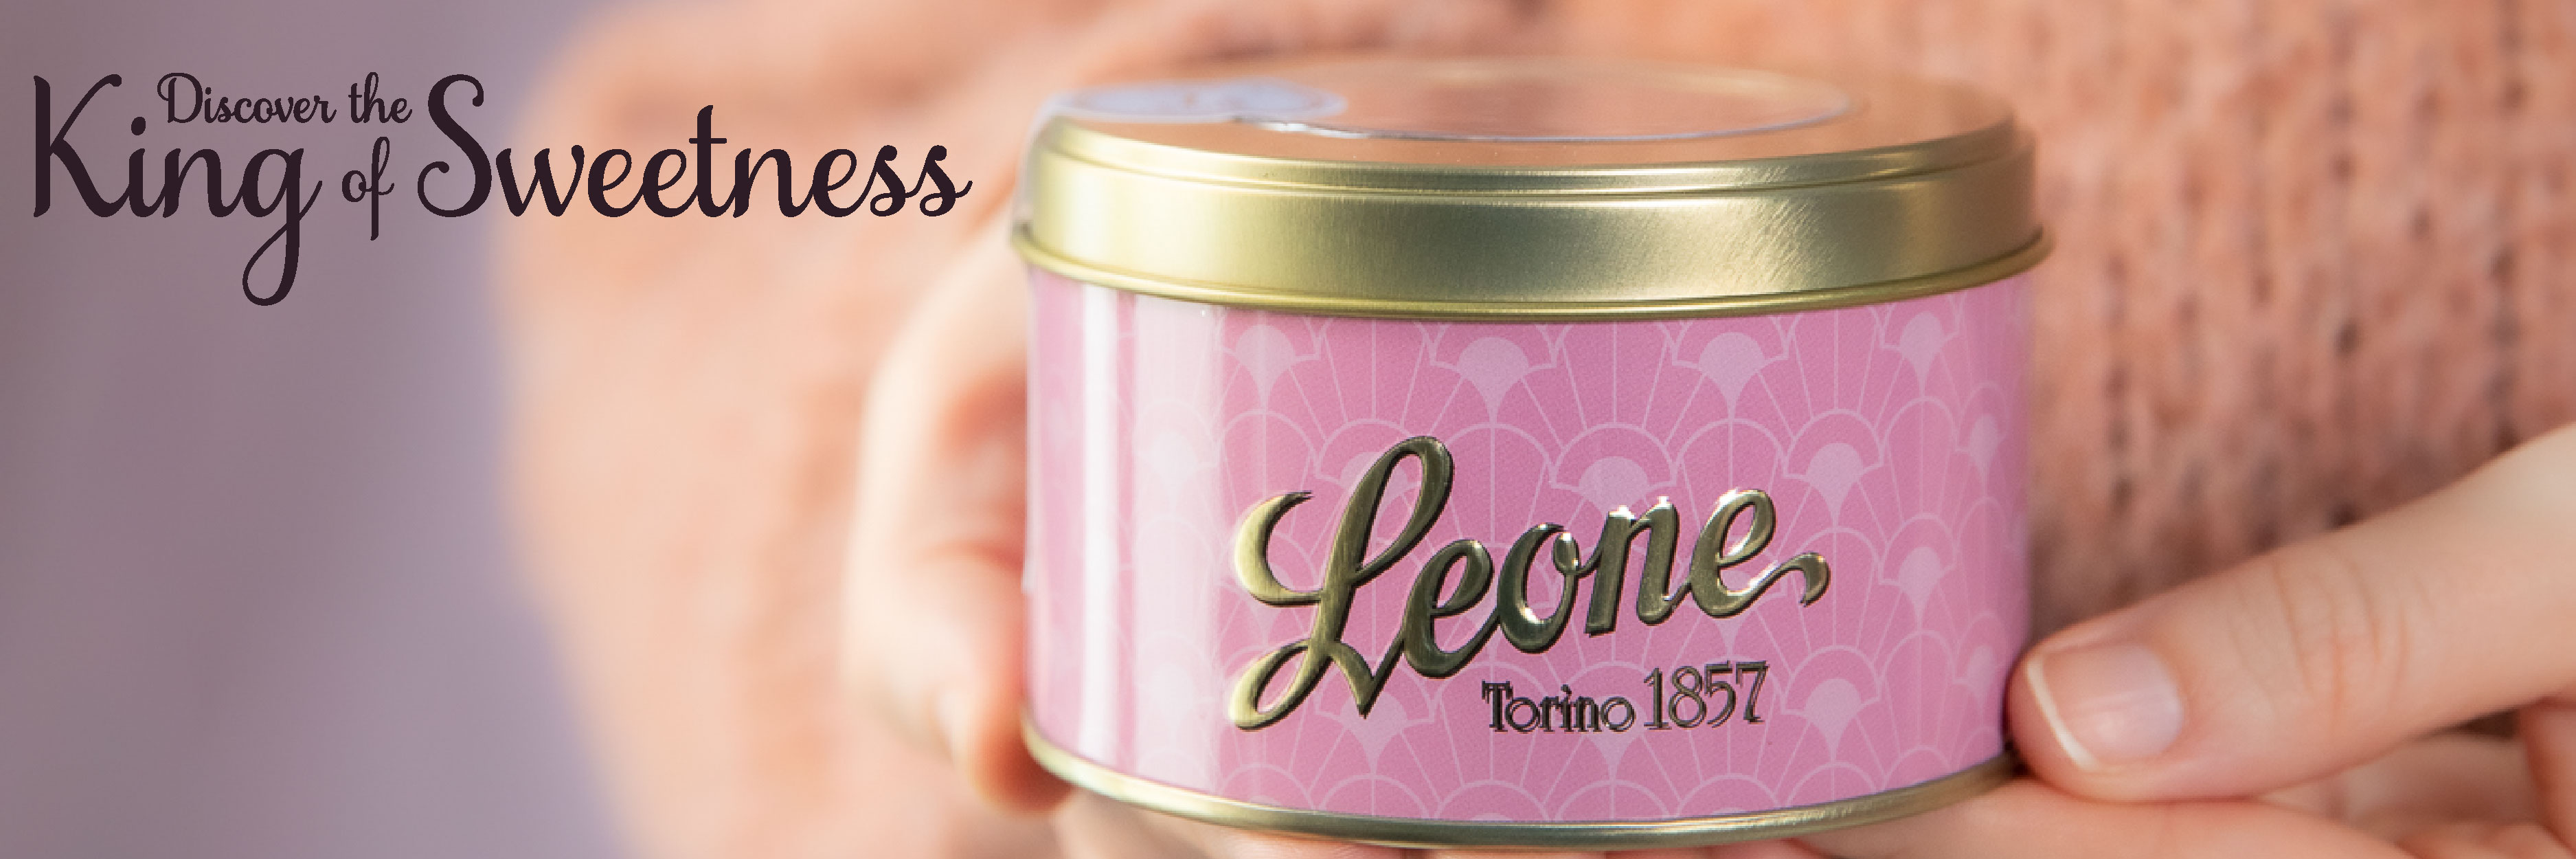 Box of Italian violet candies by Leone